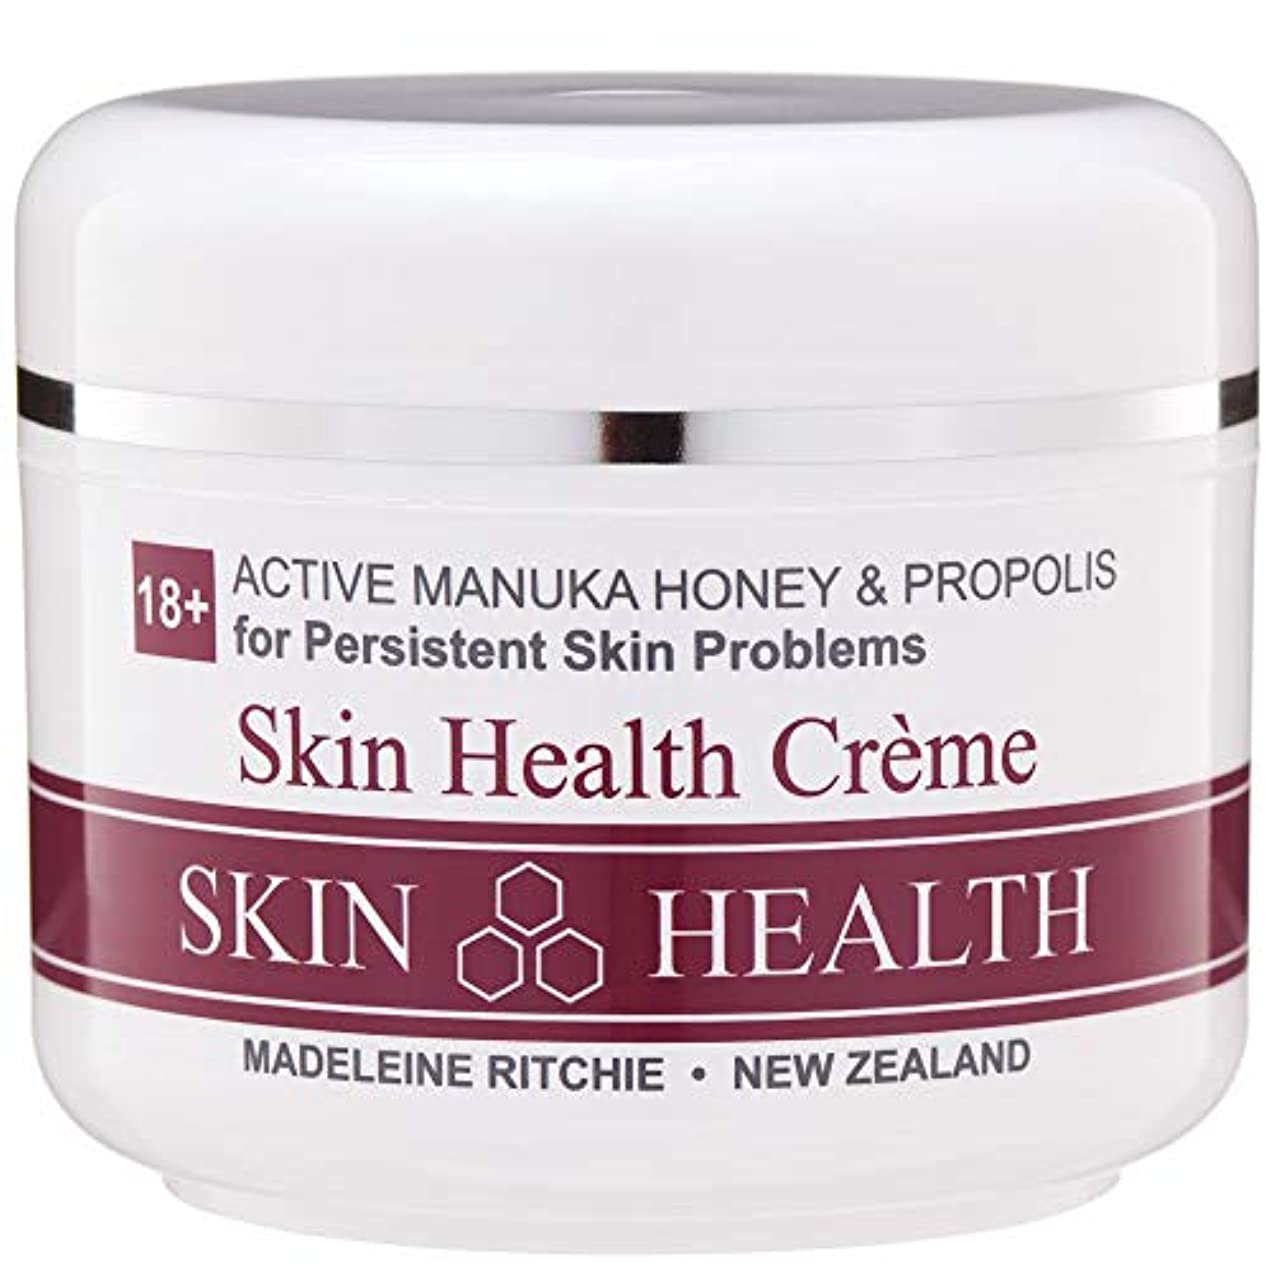 兵器庫早熟支払いMadeleine Ritchie New Zealand 18+ Active Manuka Honey Skin Health Cream Jar 100ml